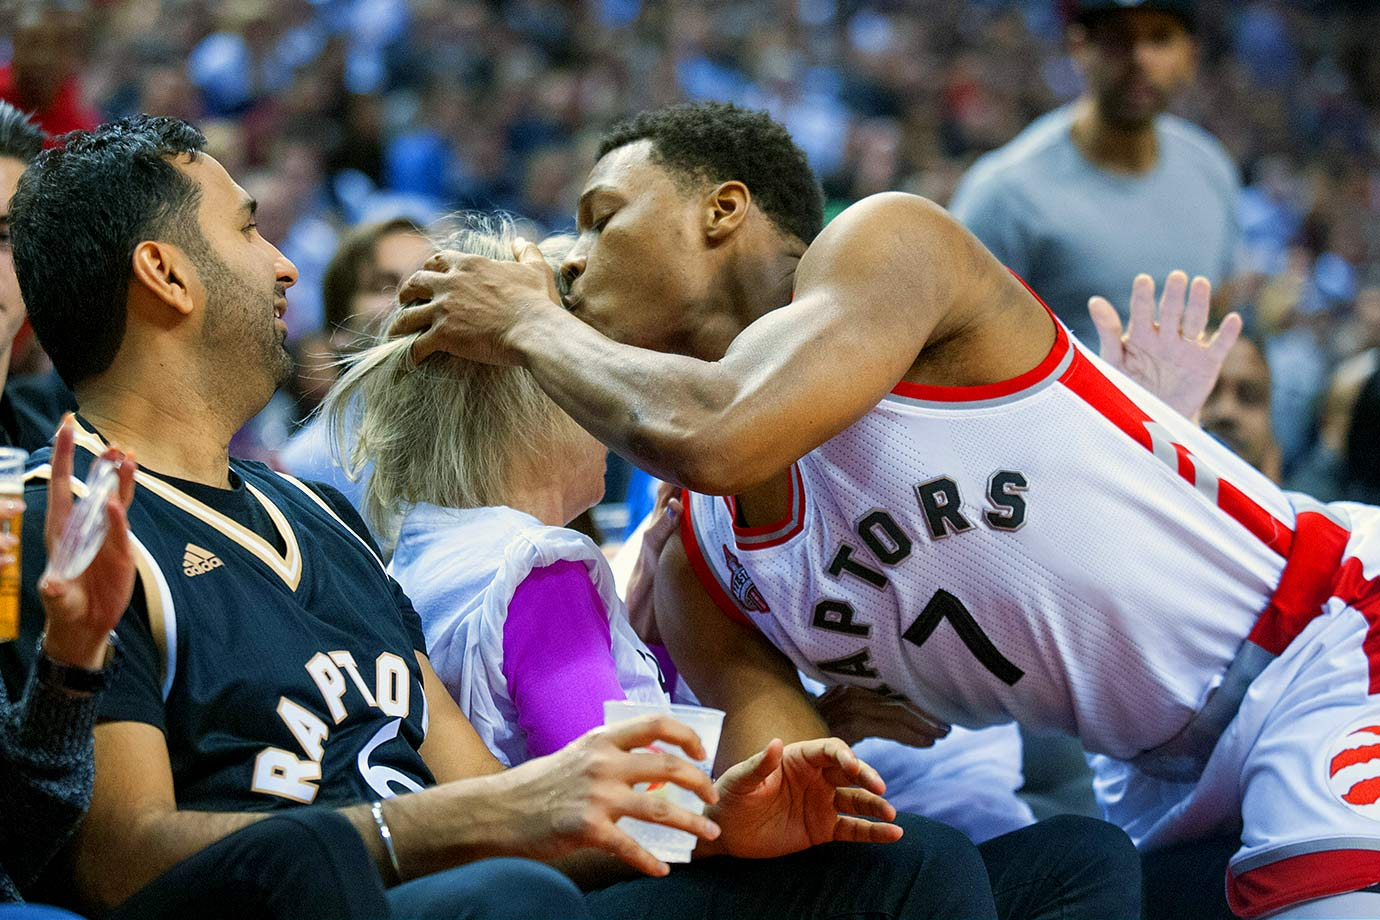 Toronto Raptors point guard Kyle Lowry kisses a fan on the head after running into her while going for a ball off court against the Miami Heat at Air Canada Centre in Toronto.